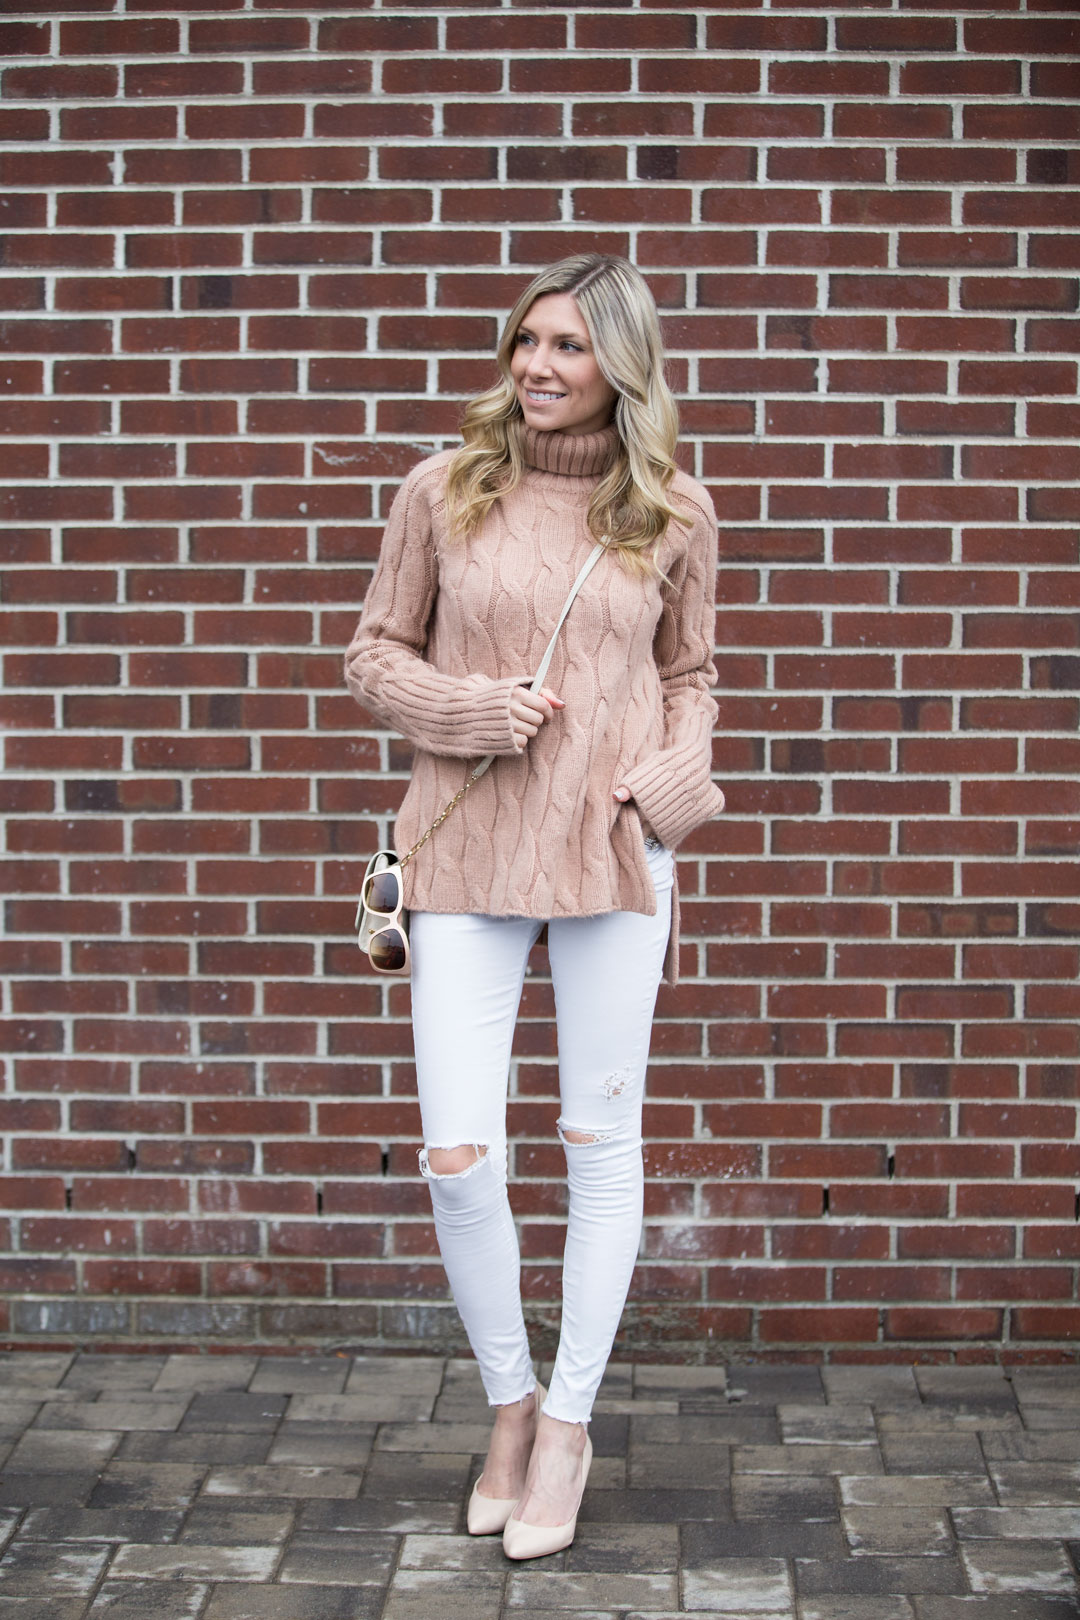 the perfect tunic sweater to wear with ripped jeans or leggings